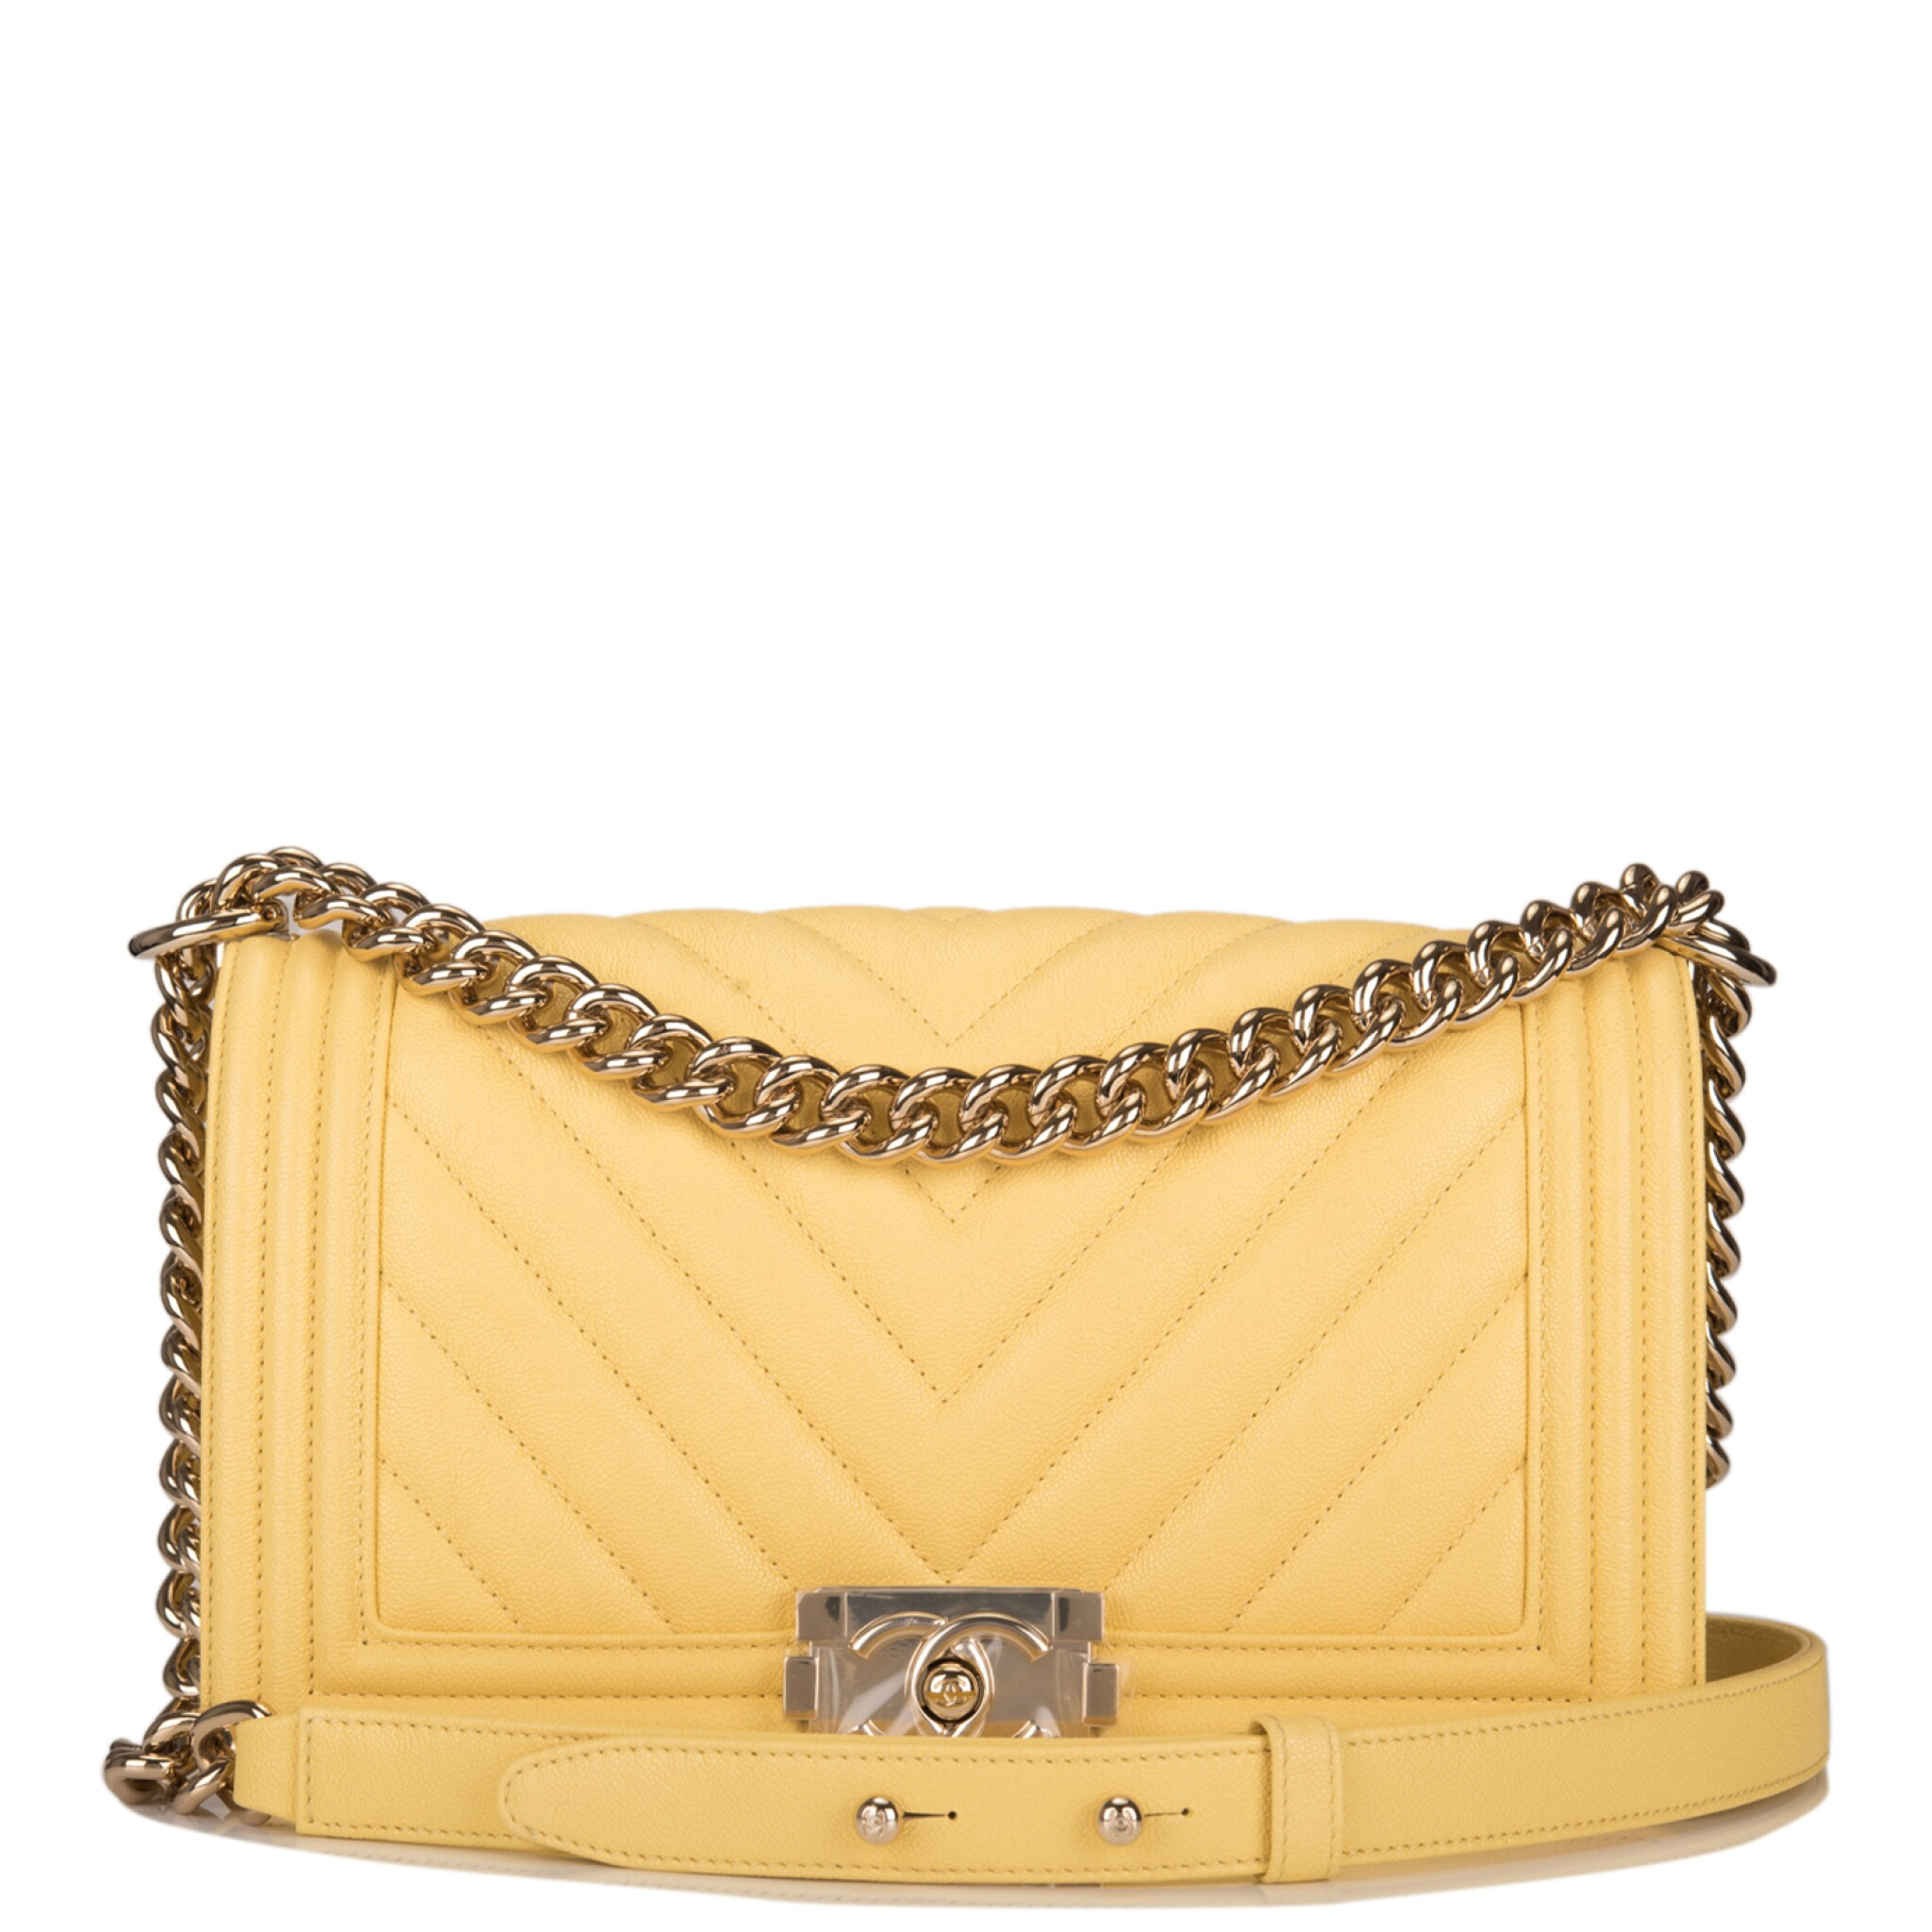 View full screen - View 1 of Lot 98. CHANEL |  YELLOW CHEVRON OLD MEDIUM BOY BAG OF CAVIAR LEATHER WITH LIGHT GOLD TONE HARDWARE.